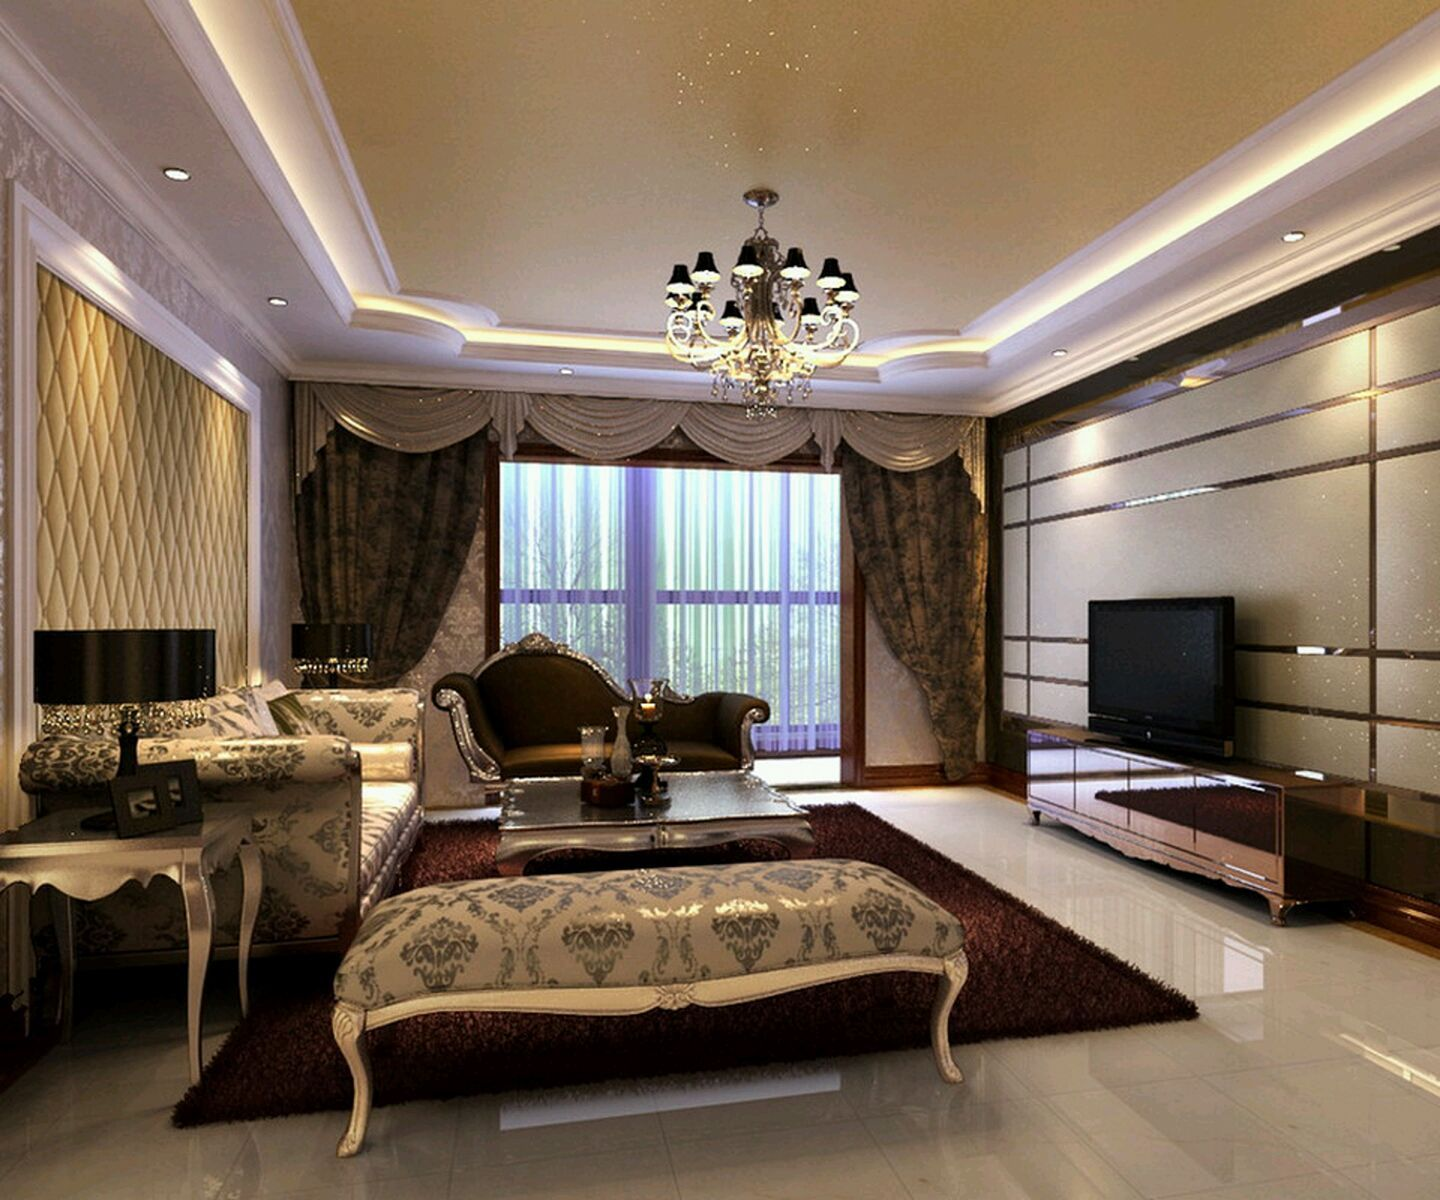 Best Interior Design For Living Room Prepossessing The Best 24 Tips And Tricks To Create Your Living Room Look More Design Ideas